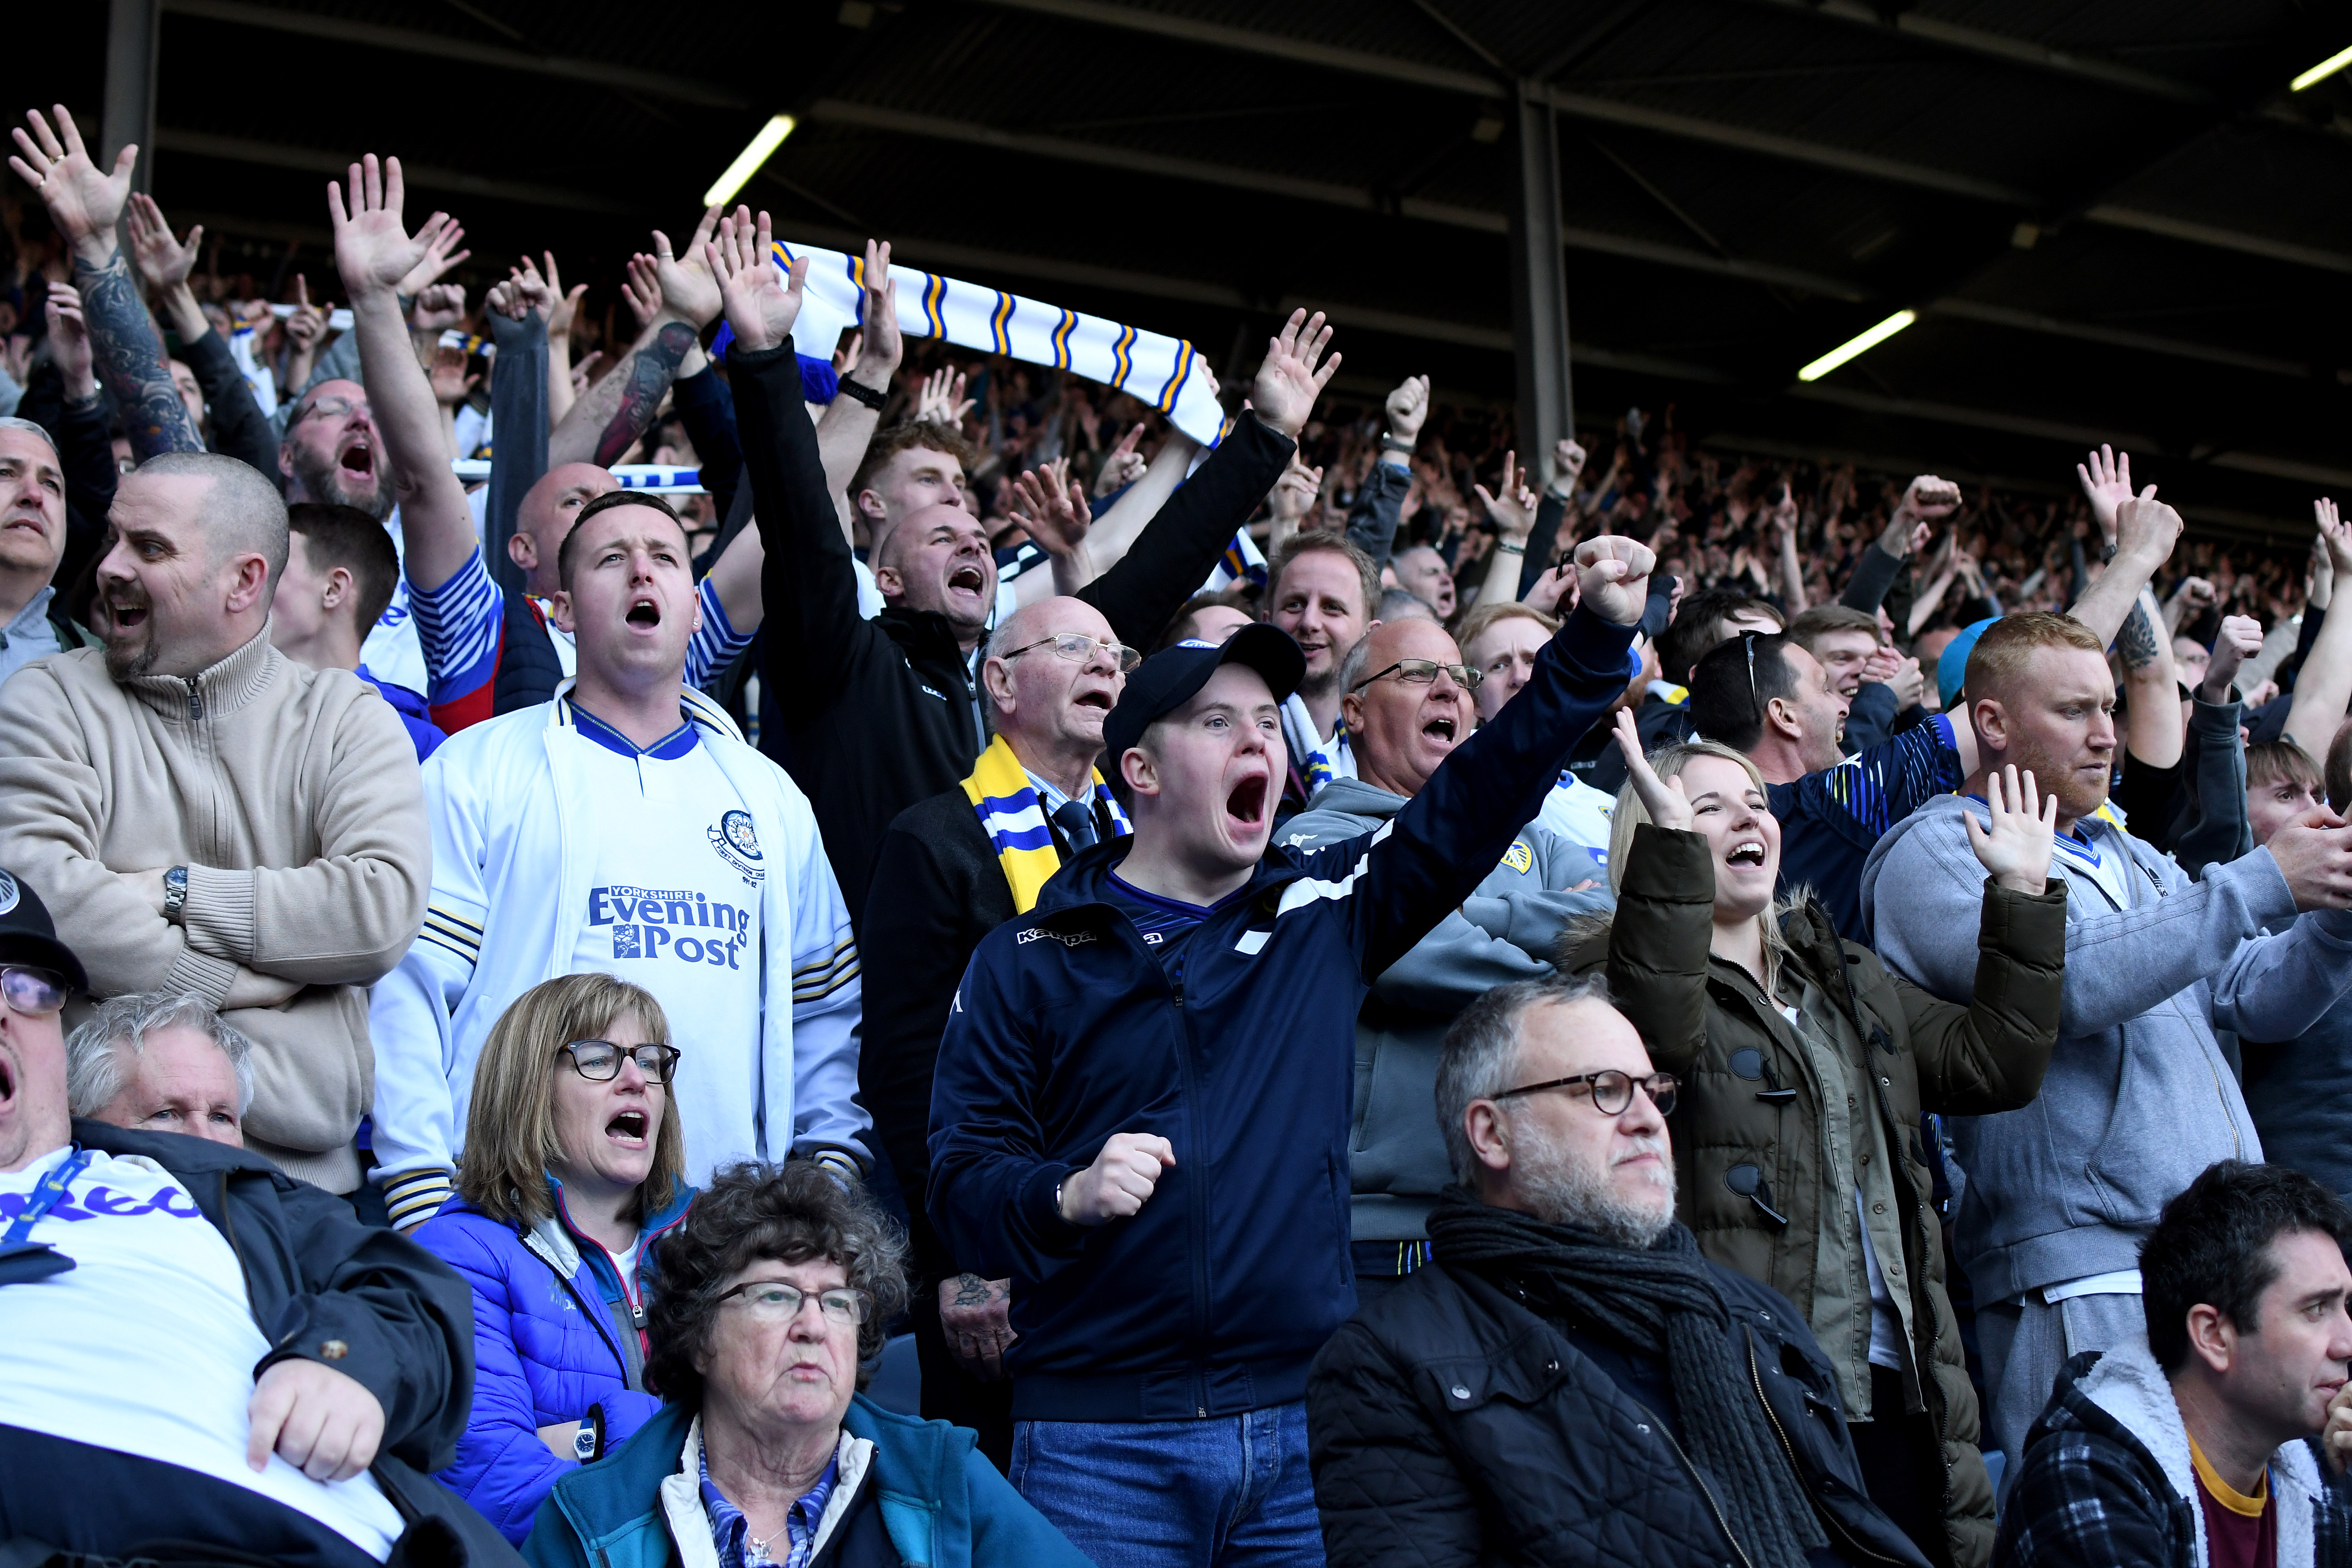 Morning Leeds-in for 17 April: Leeds United paid tribute to Les Reed, songwriter of club anthem